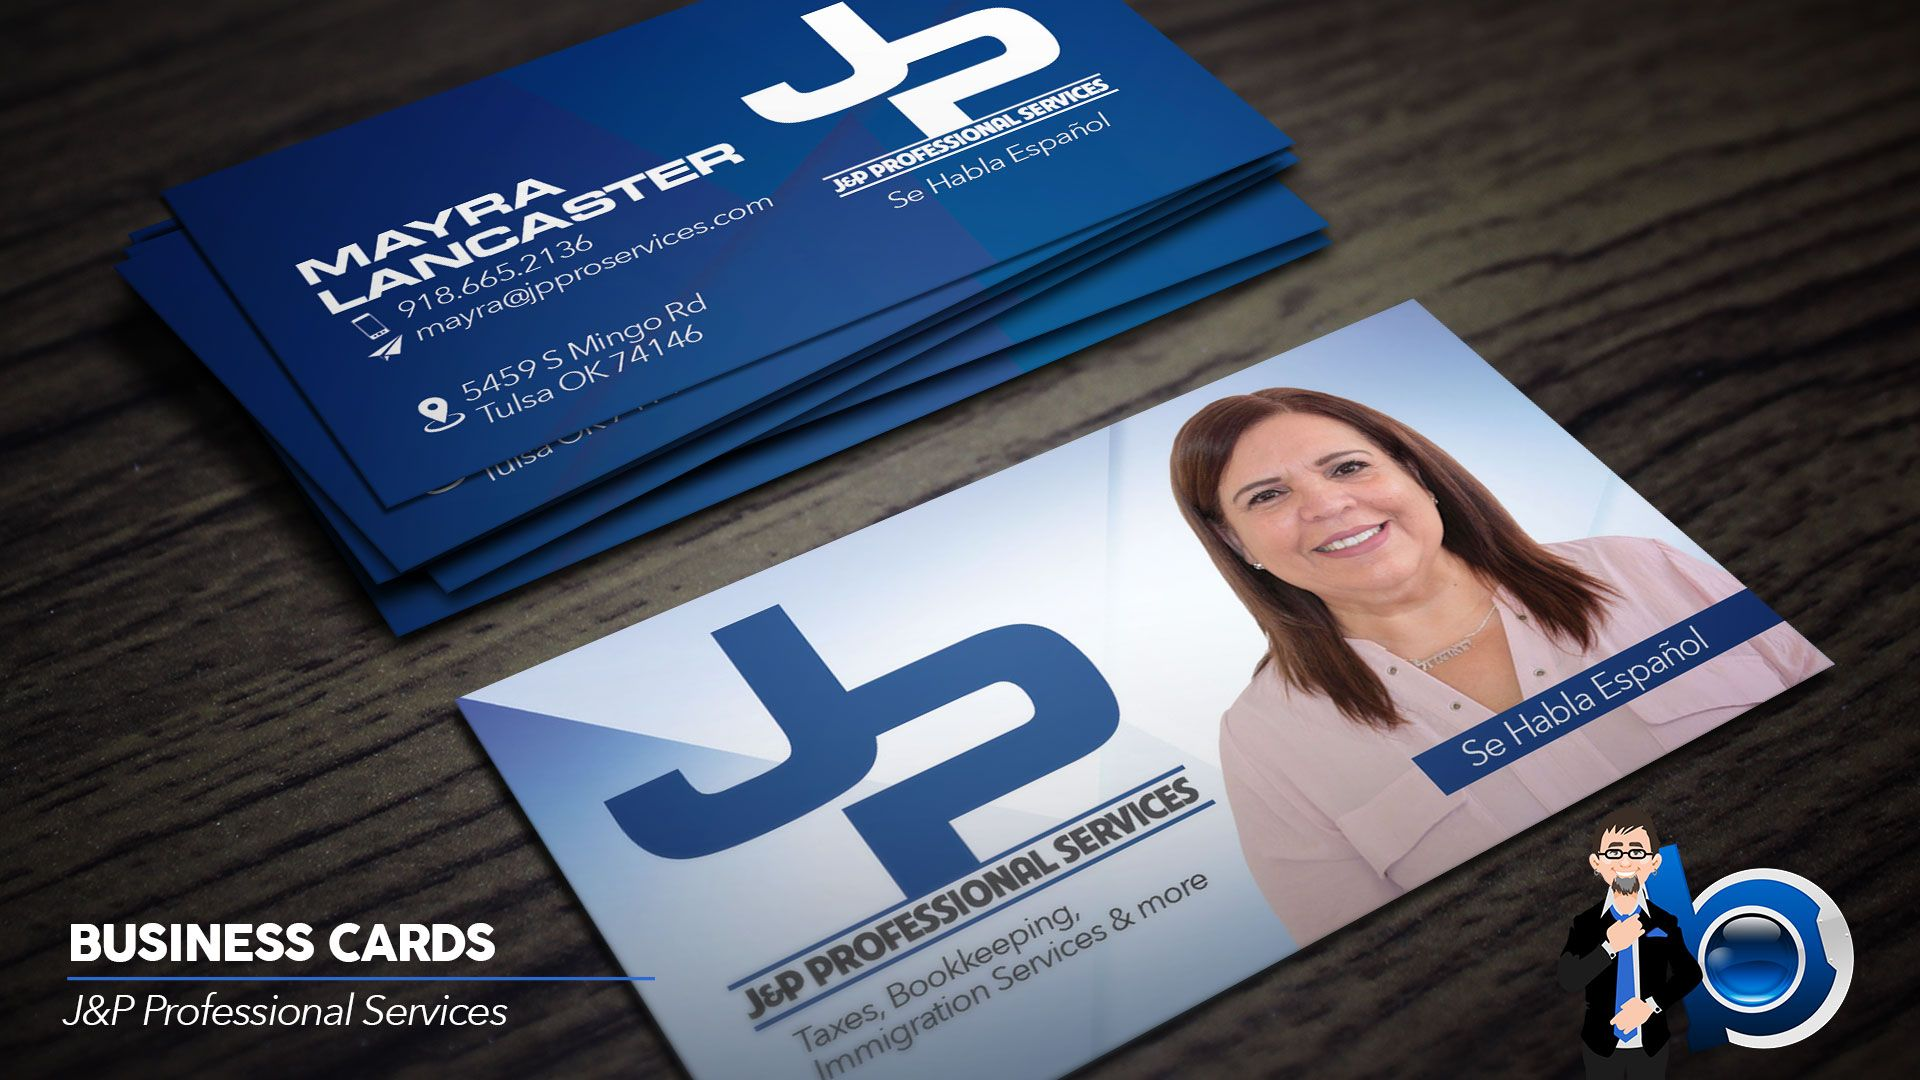 Carte De Visite Business Card For JP Professional Services Design Cards Designs